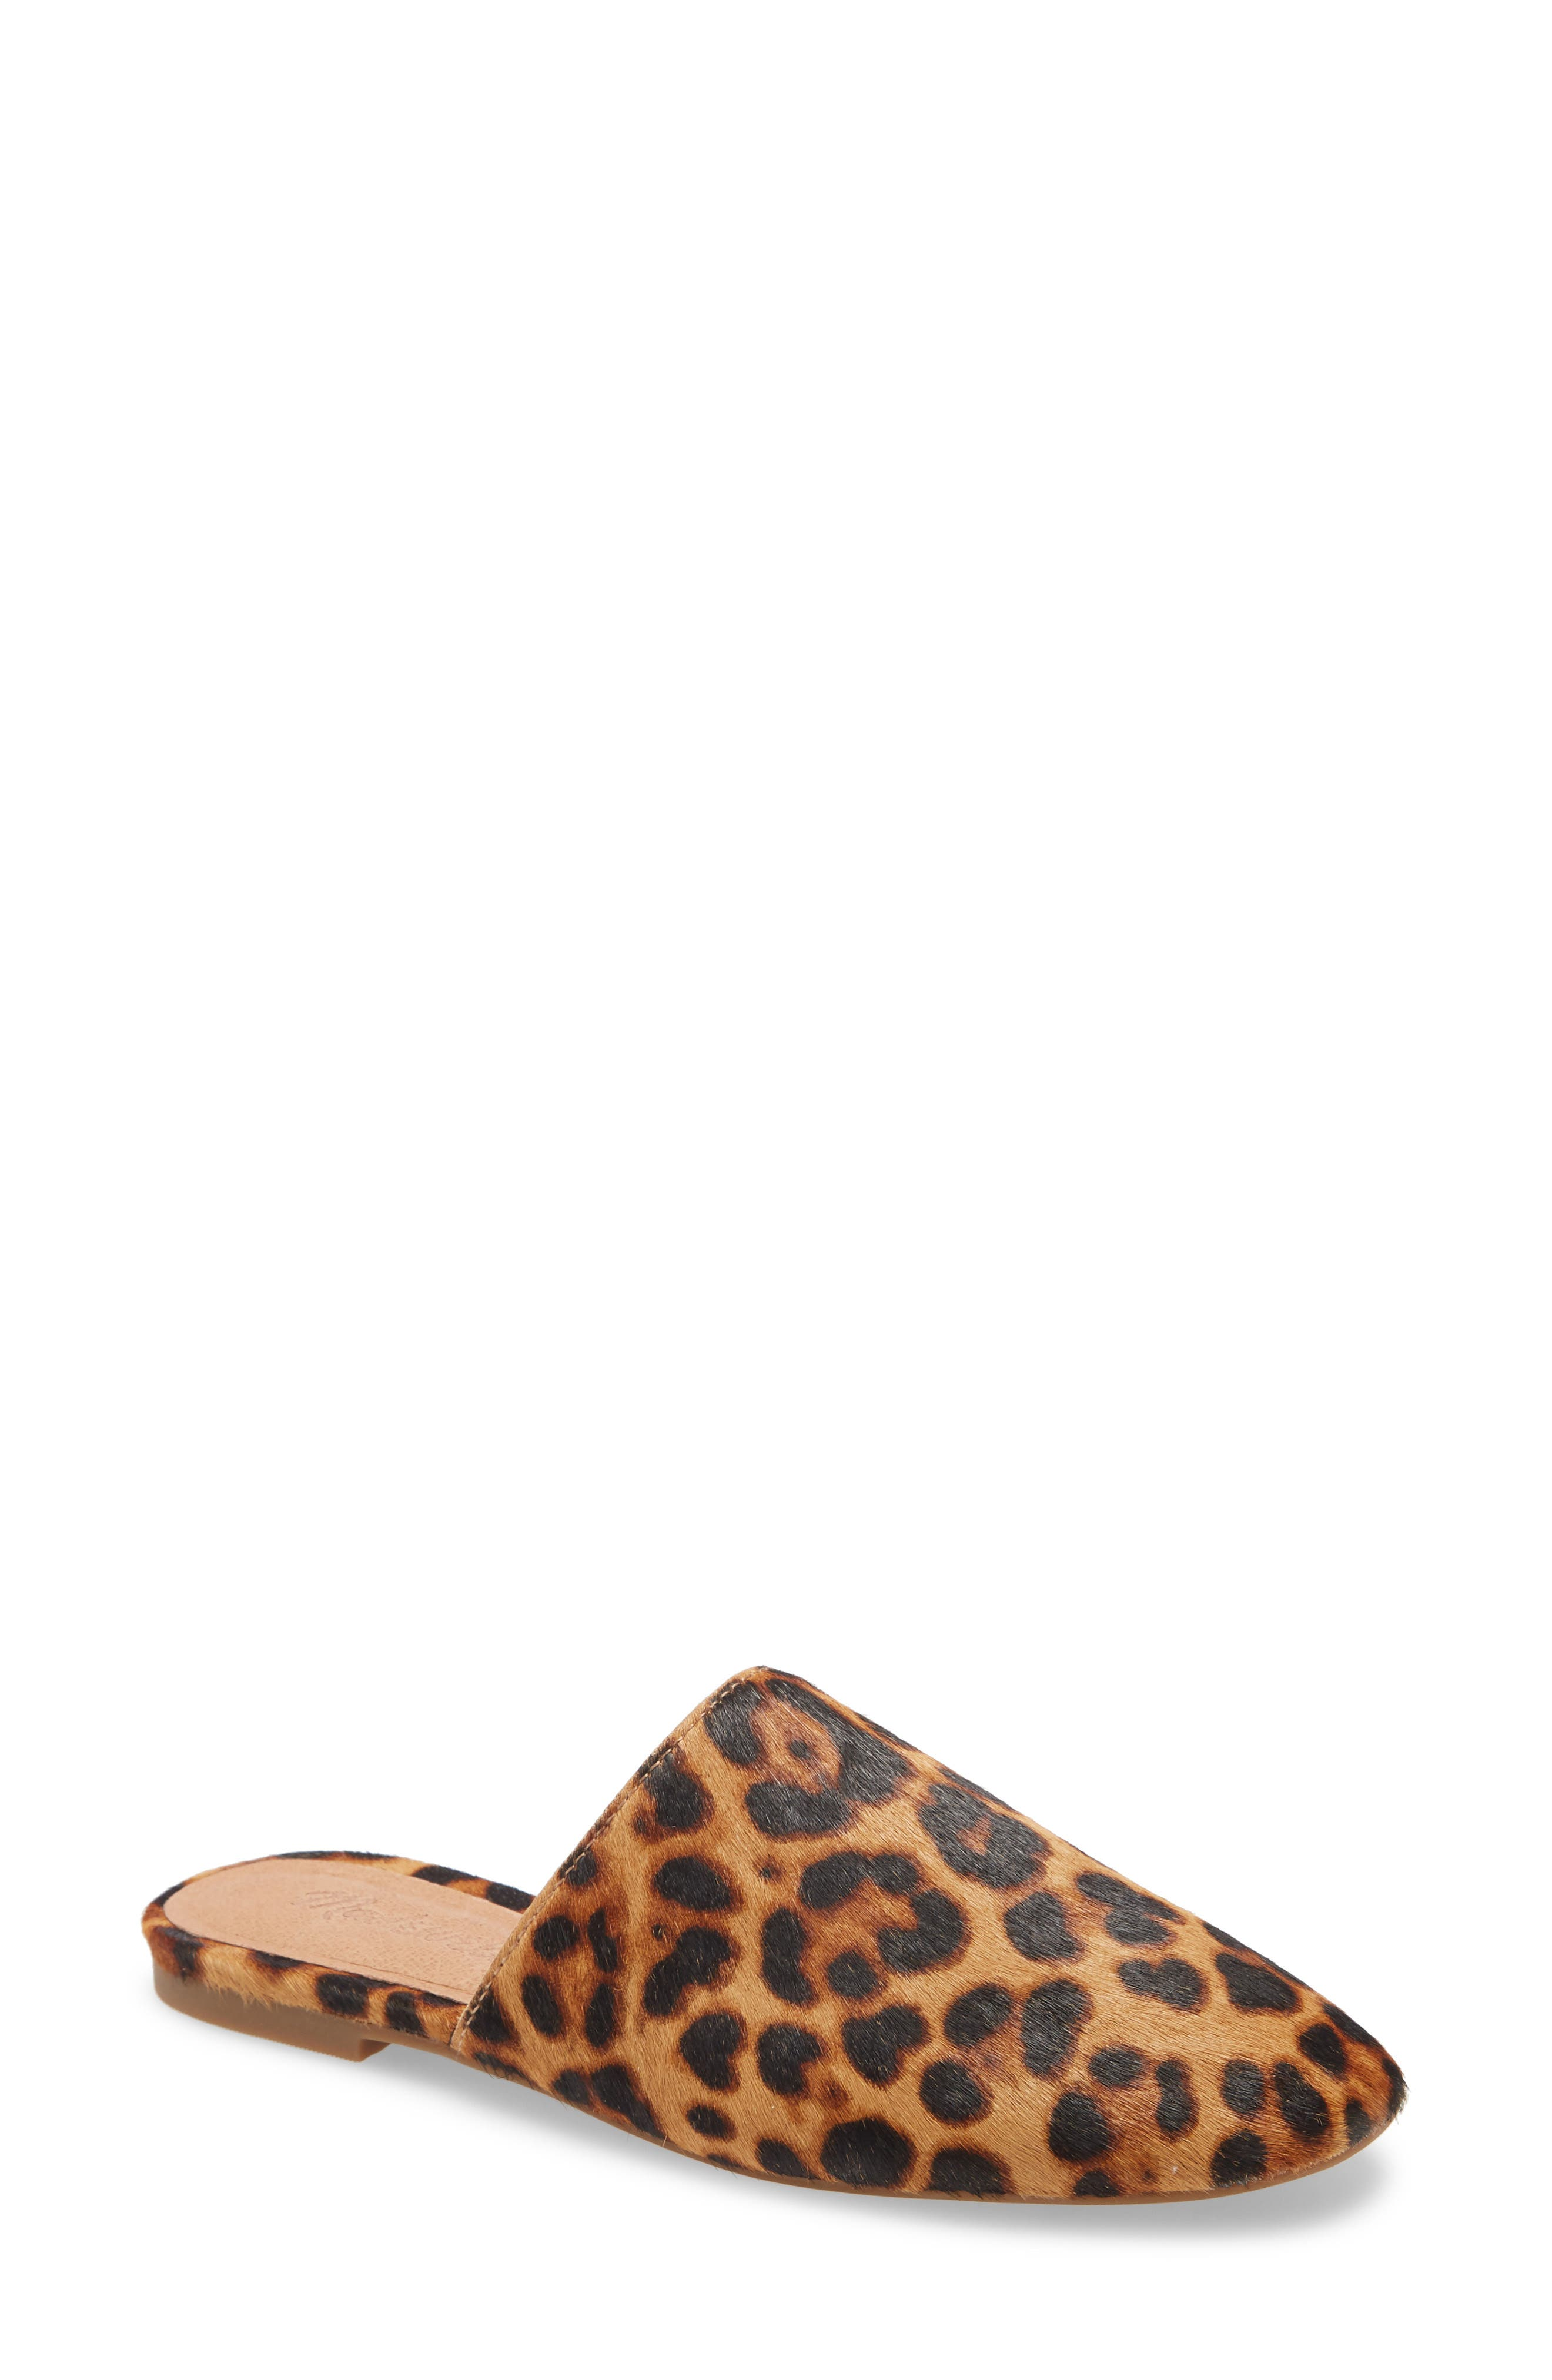 A slip-on version of Madewell\'s favorite minimalist flat, this modern mule has a squared-off shape we love. So easy to slide on (and off), this mule has that effortless cool-girl energy. And, cushiness alert: the MWL Cloudlift Lite padding feels like walking on a-well, you know. Style Name: Madewell The Cory Mule. Style Number: 5986472 1. Available in stores.